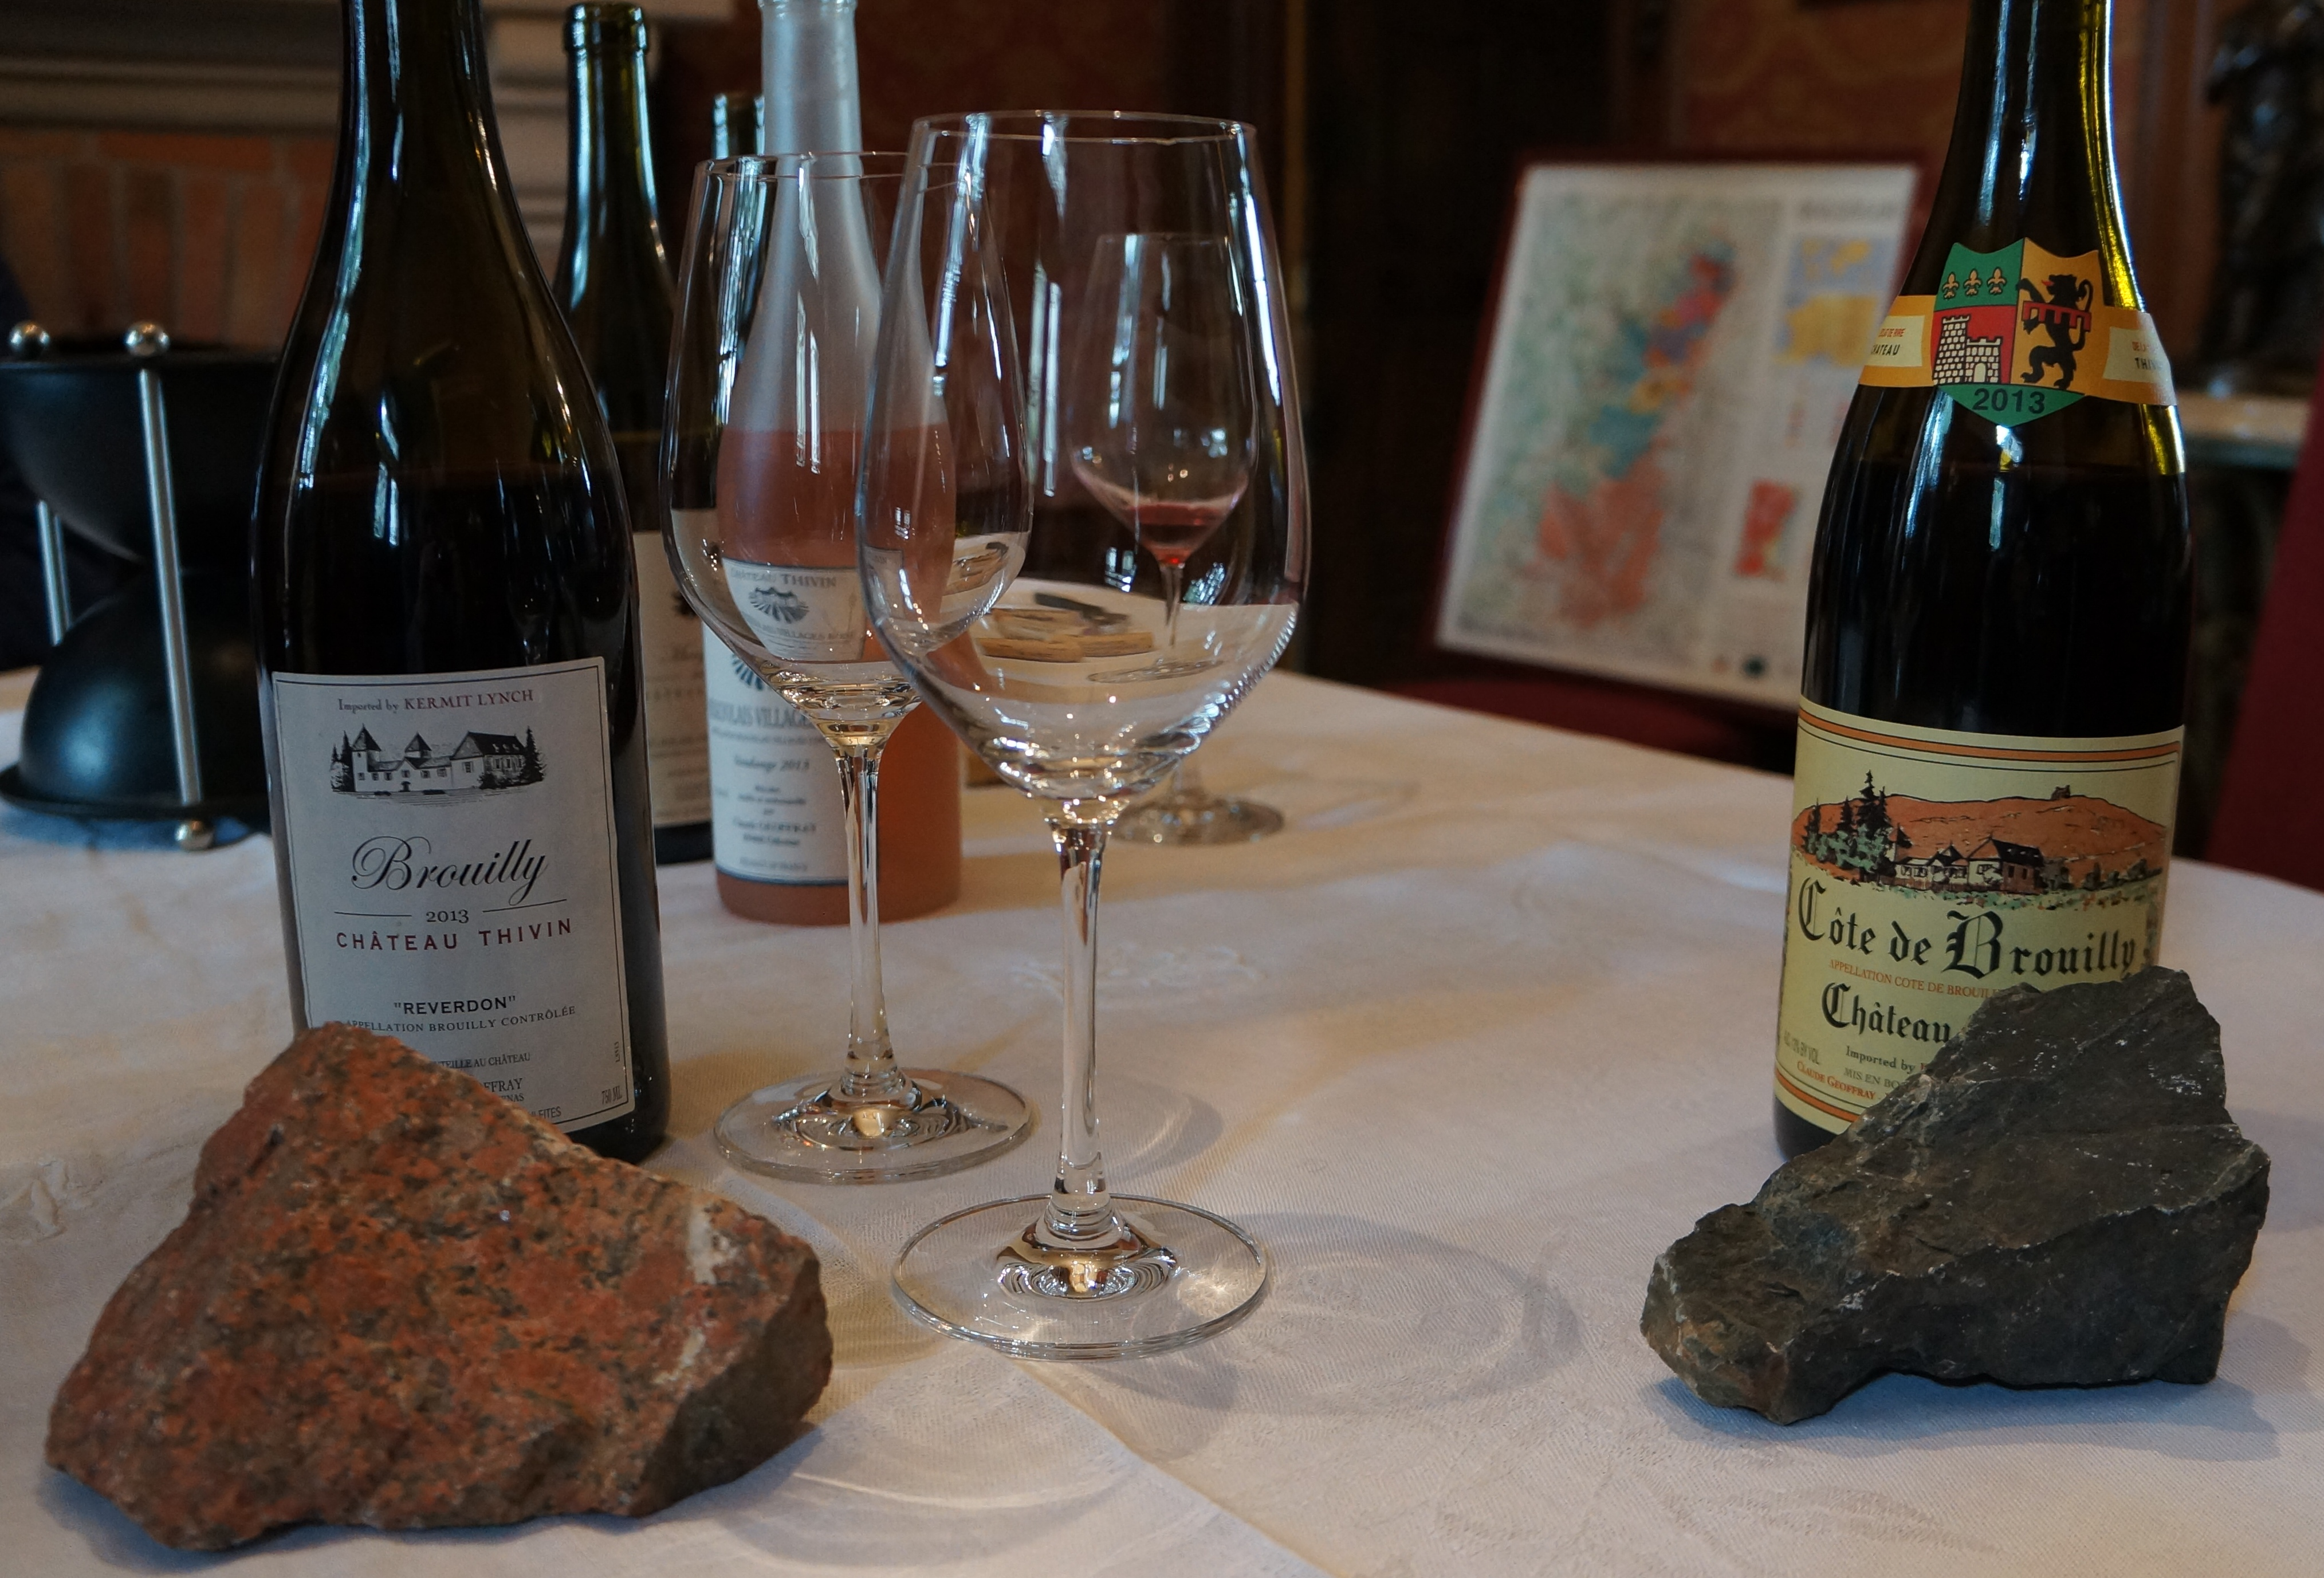 Exploring the differences between Brouilly and Cote de Brouilly.